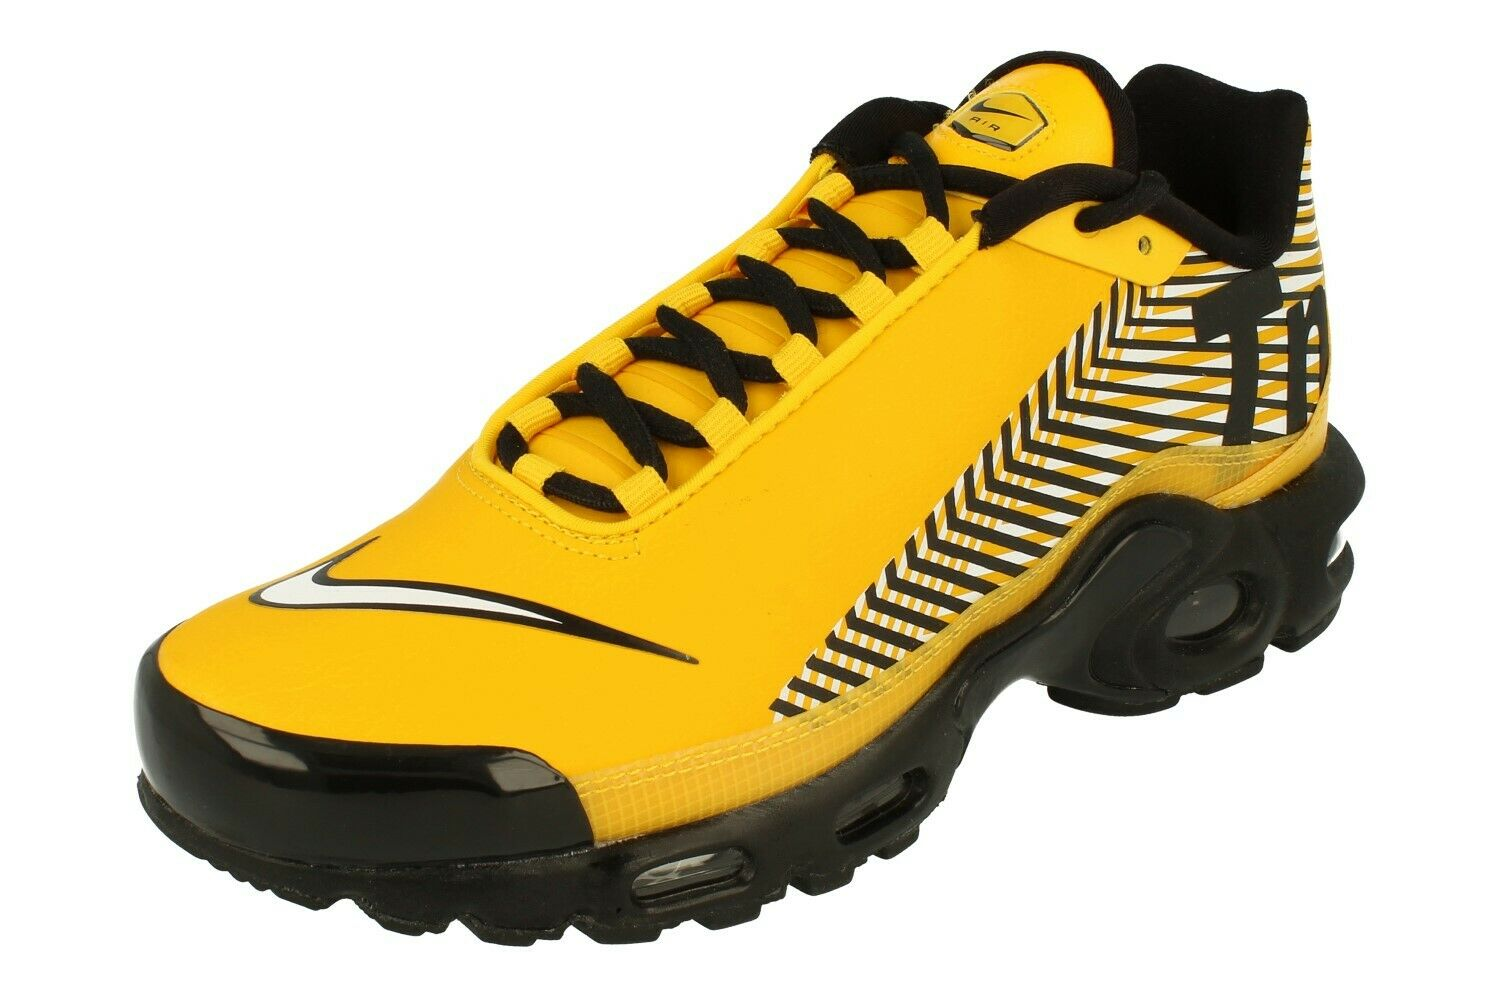 4b020bee65 Nike Air Max Plus Mens Running Trainers AV2591 Sneakers shoes 700 Tn Se  ntalgh275-Athletic Shoes